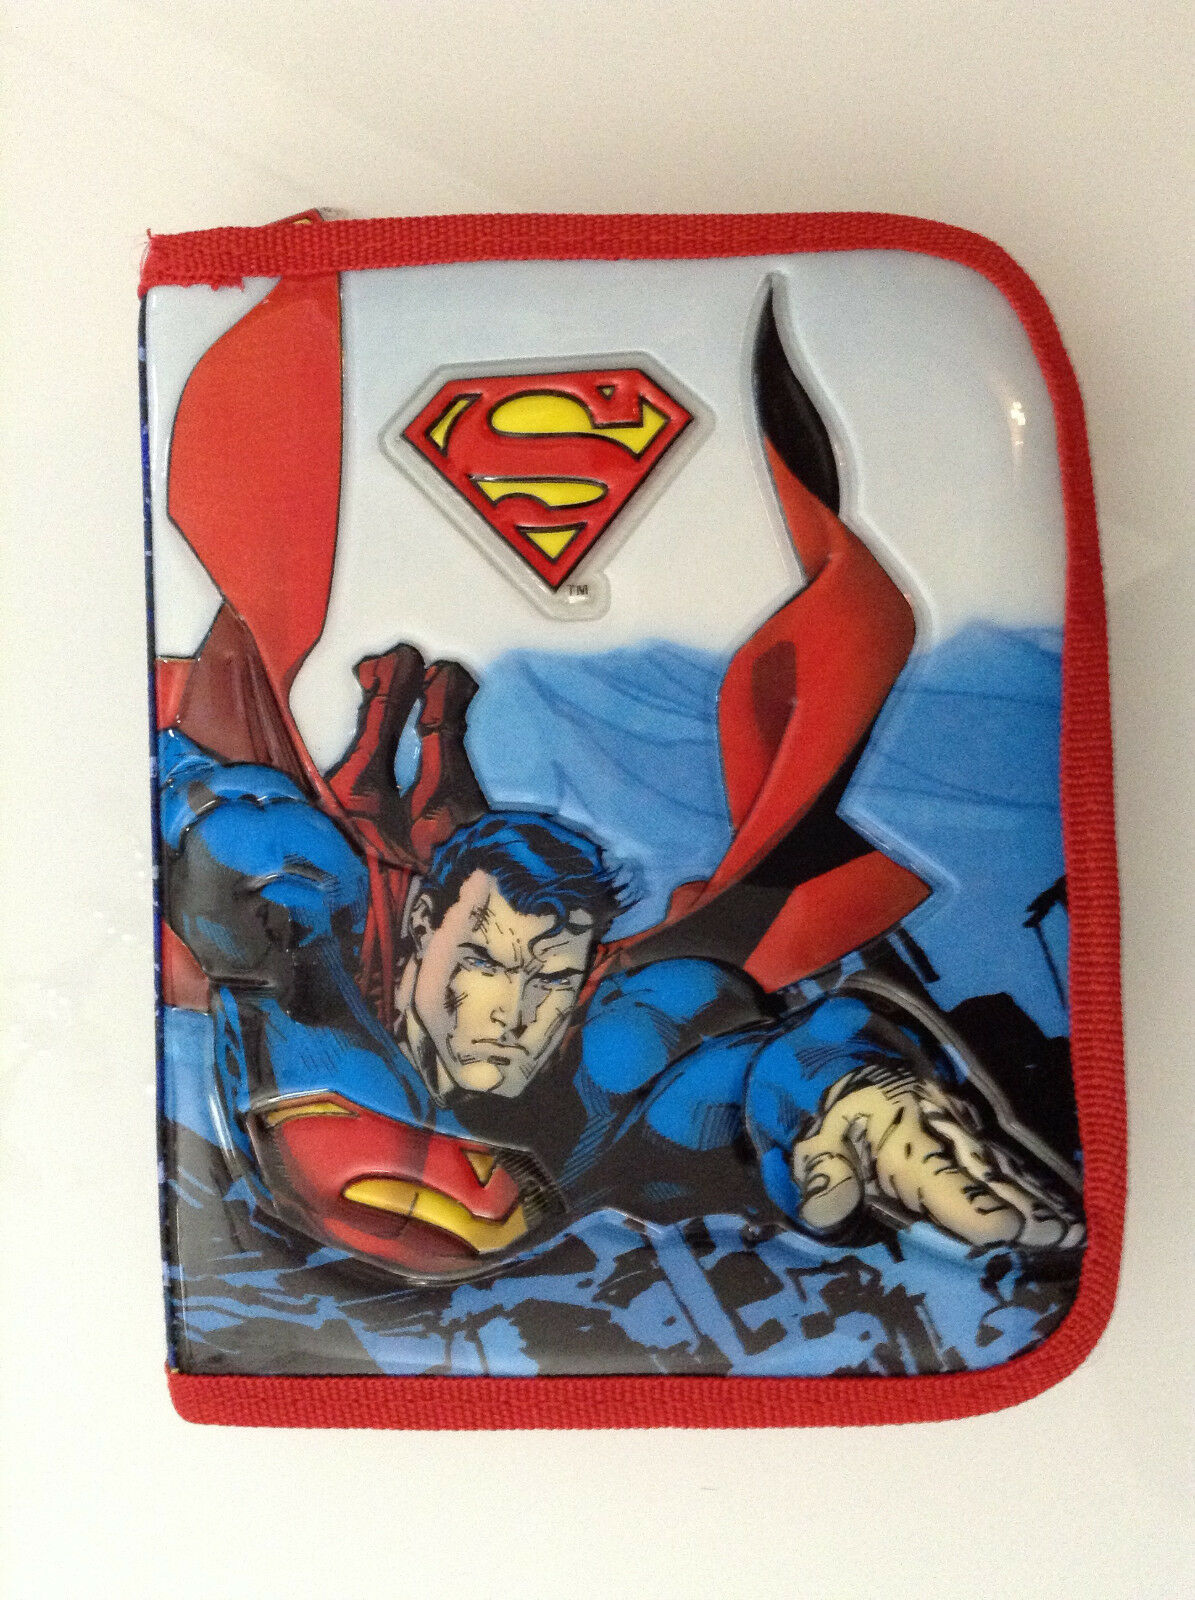 SUPERMAN JIM LEE LEE LEE EMBOSSED FIGURE DOUBLE PENCIL BOX CASE FULL OF PENS,PENCILS DC 2b2c9b